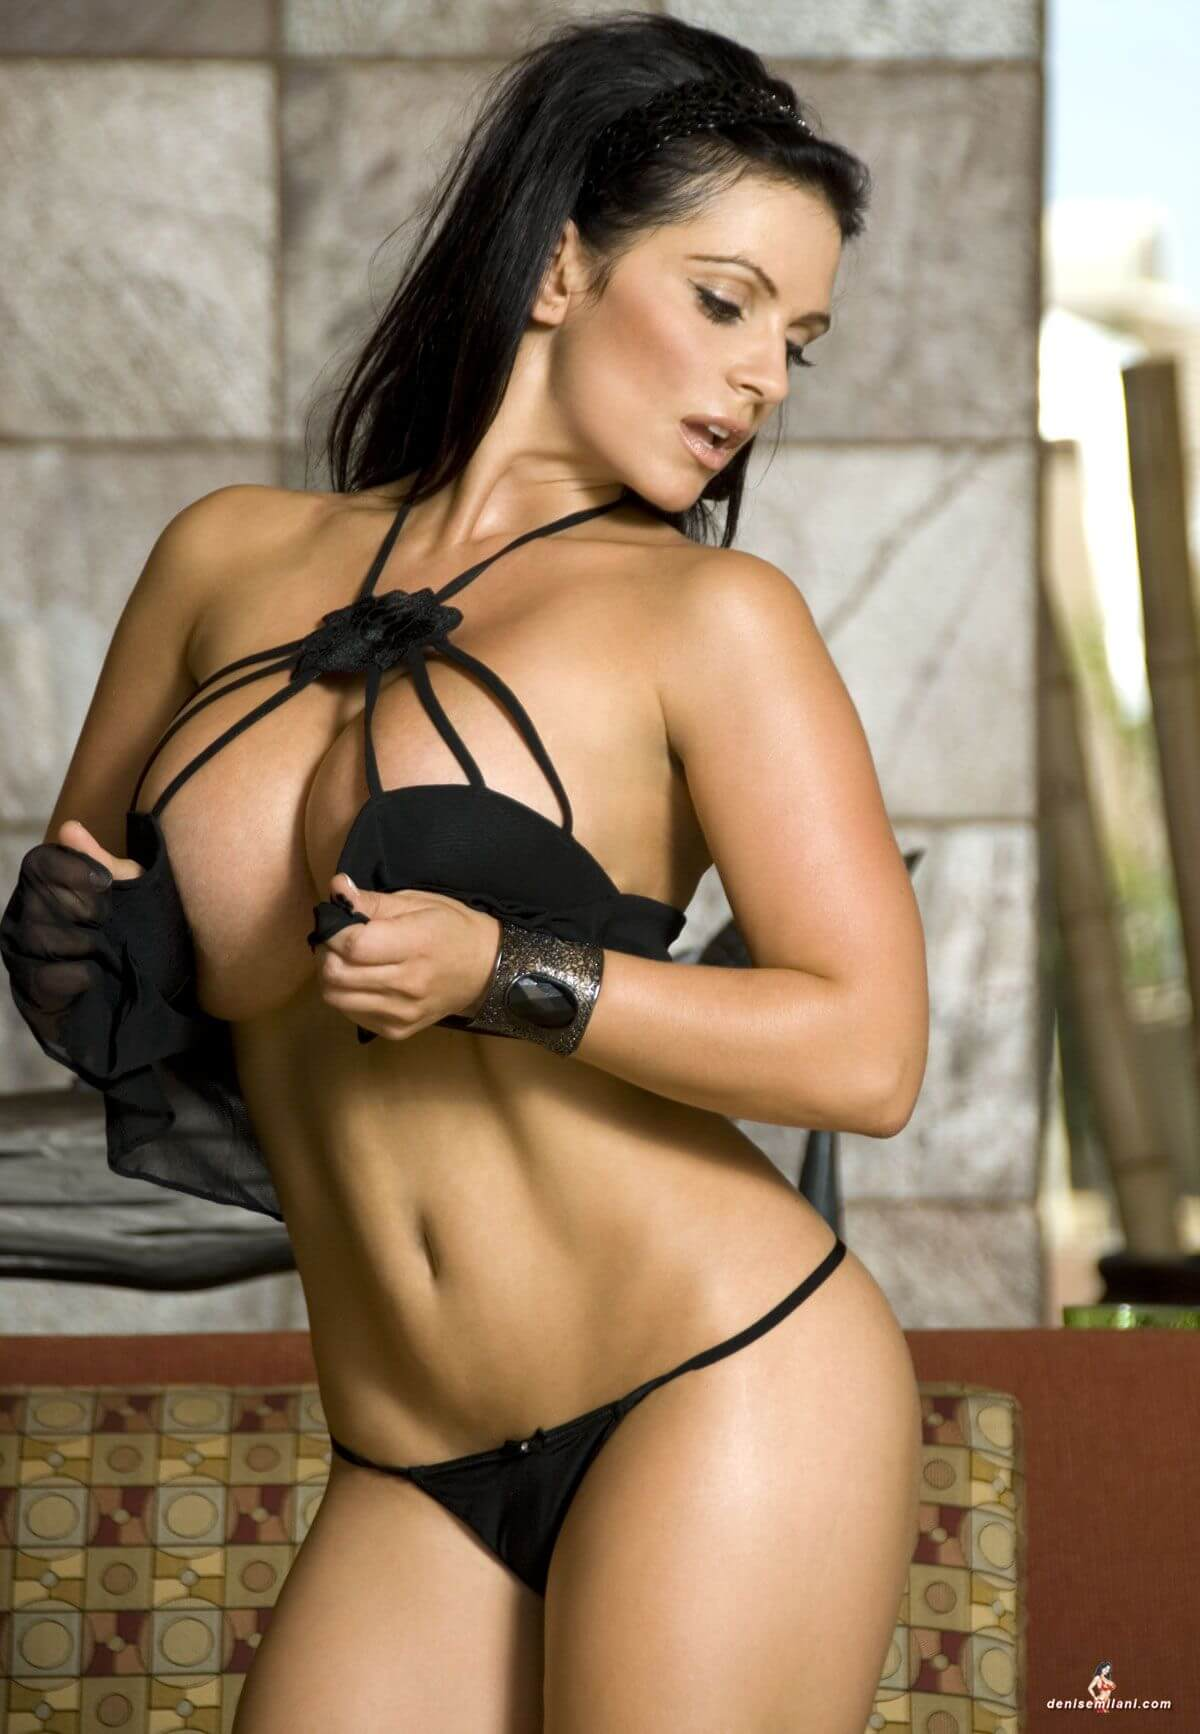 Denise Milani hot lingerie picture